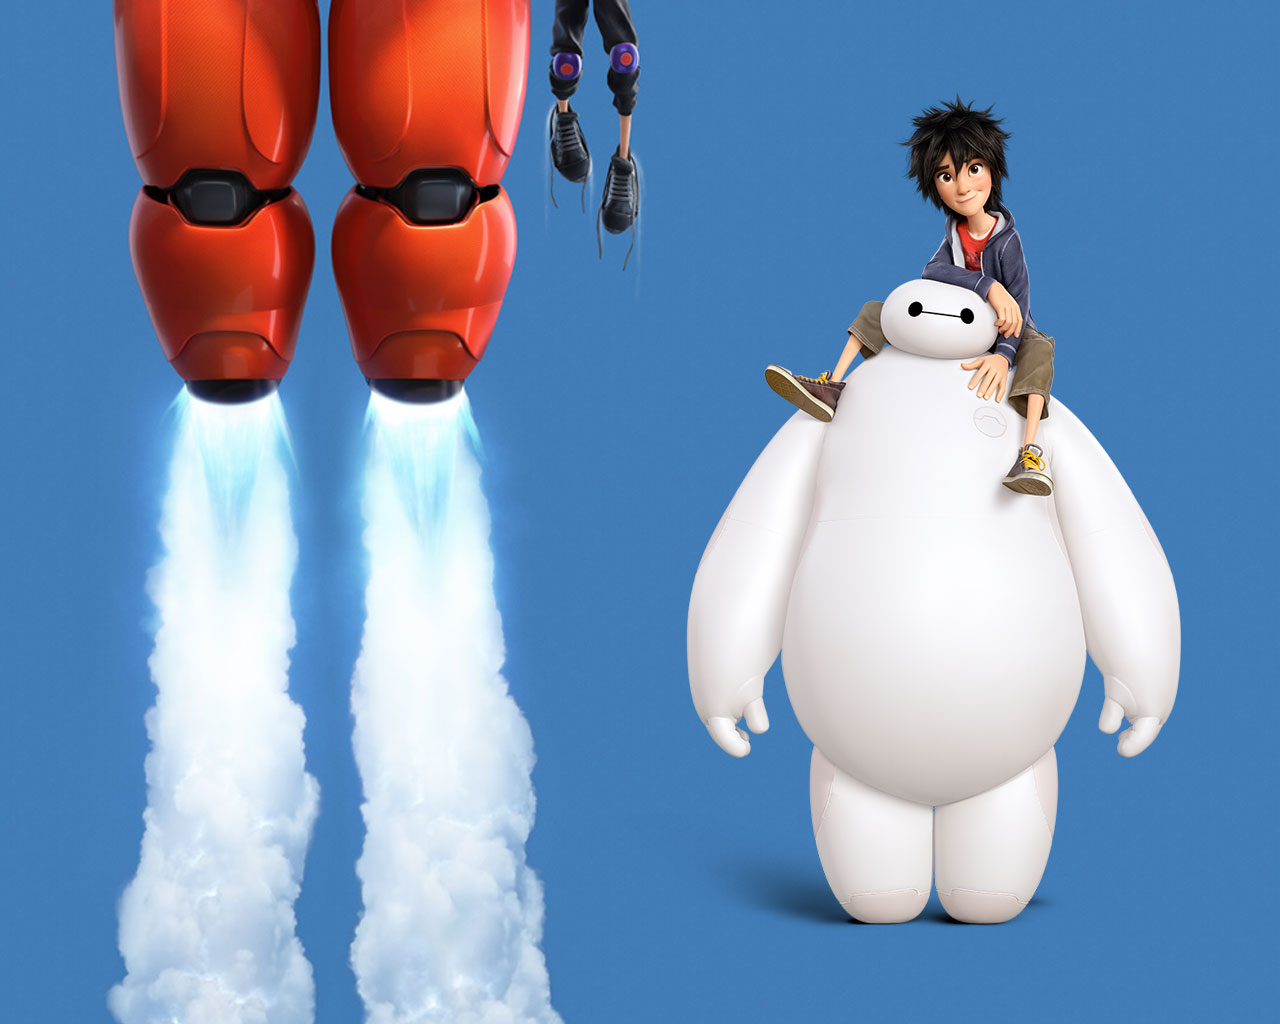 Big Hero 6 Baymax And Hiro Wallpaper | www.imgkid.com